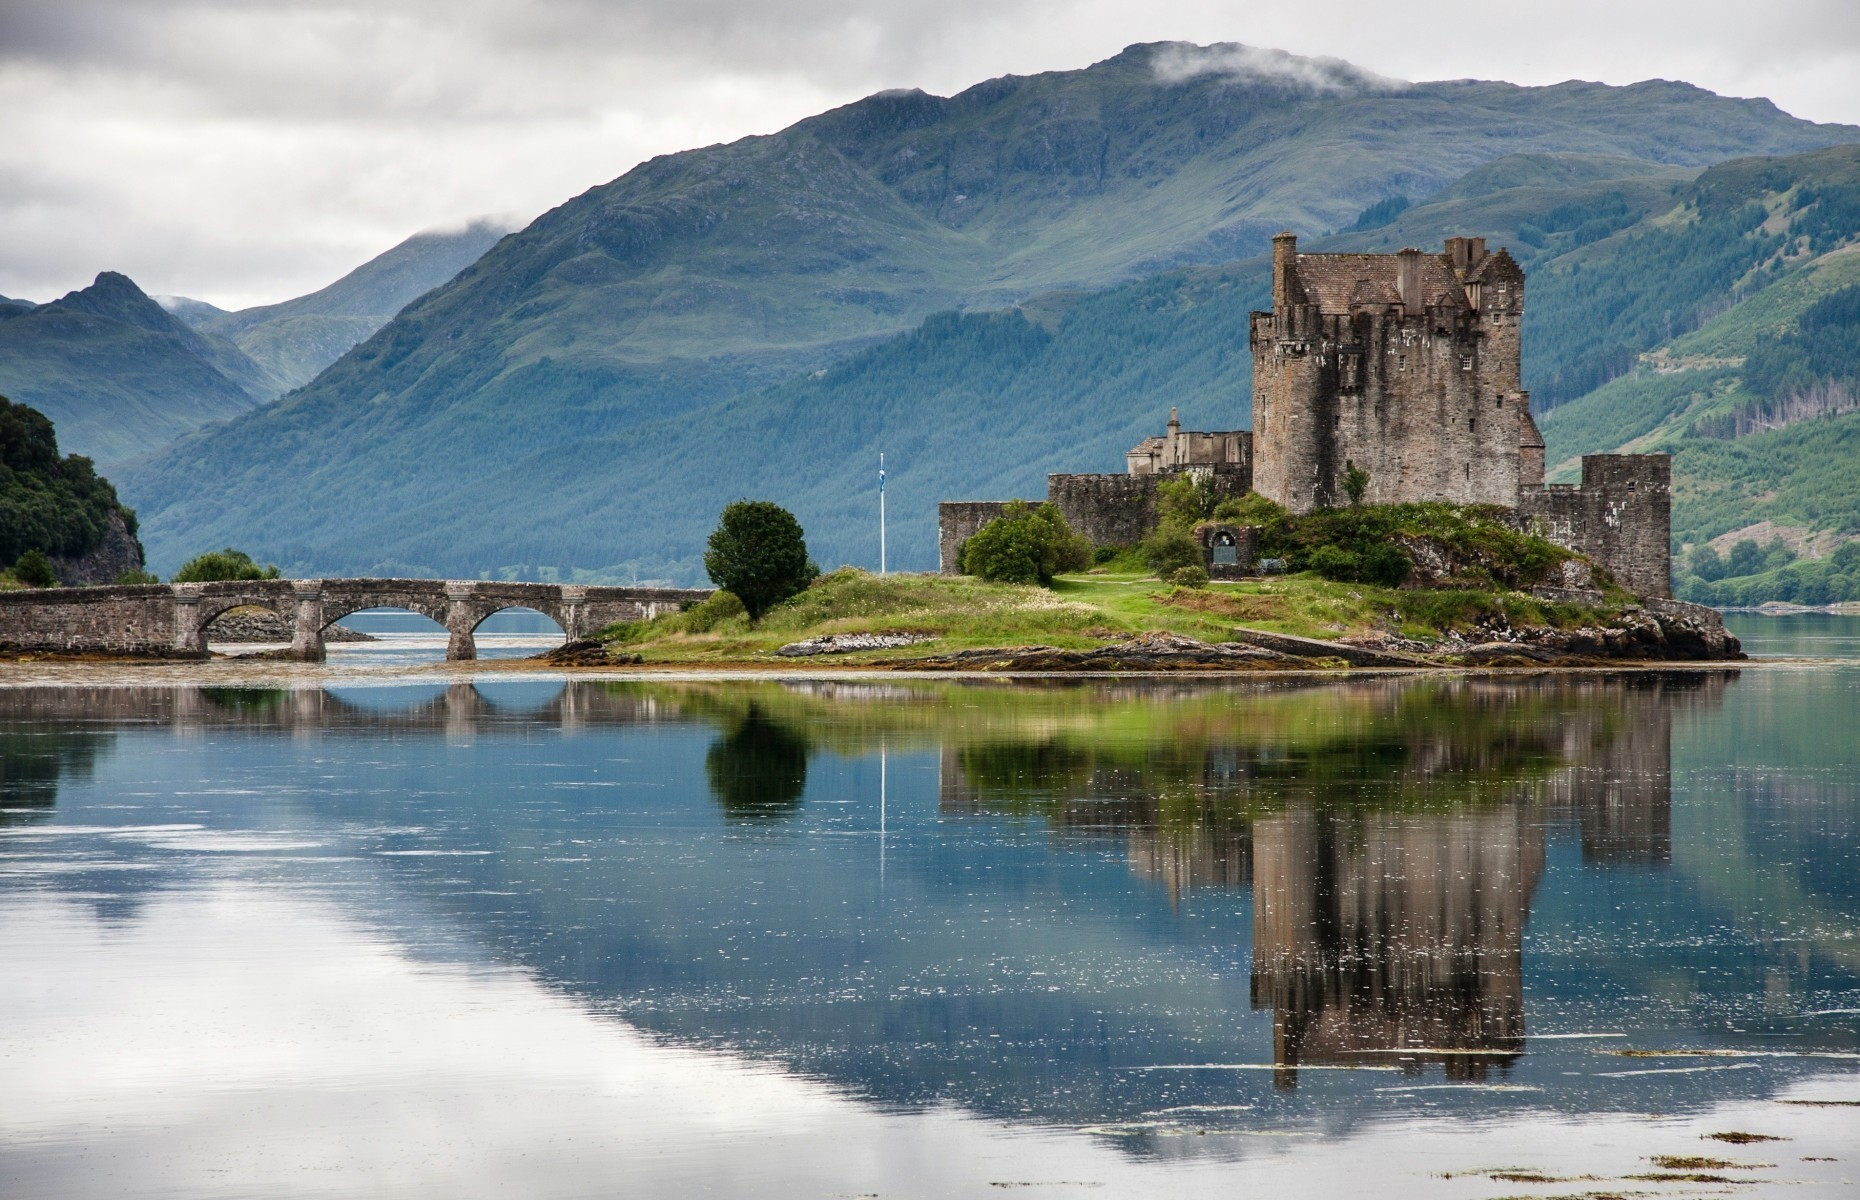 Slide 20 of 41: A team from Disney travelled to the Scottish Highlands to carry out research for the popular movie Brave, released in 2012, and Eilean Donan Castle provided the inspiration for the royal castle in the film.